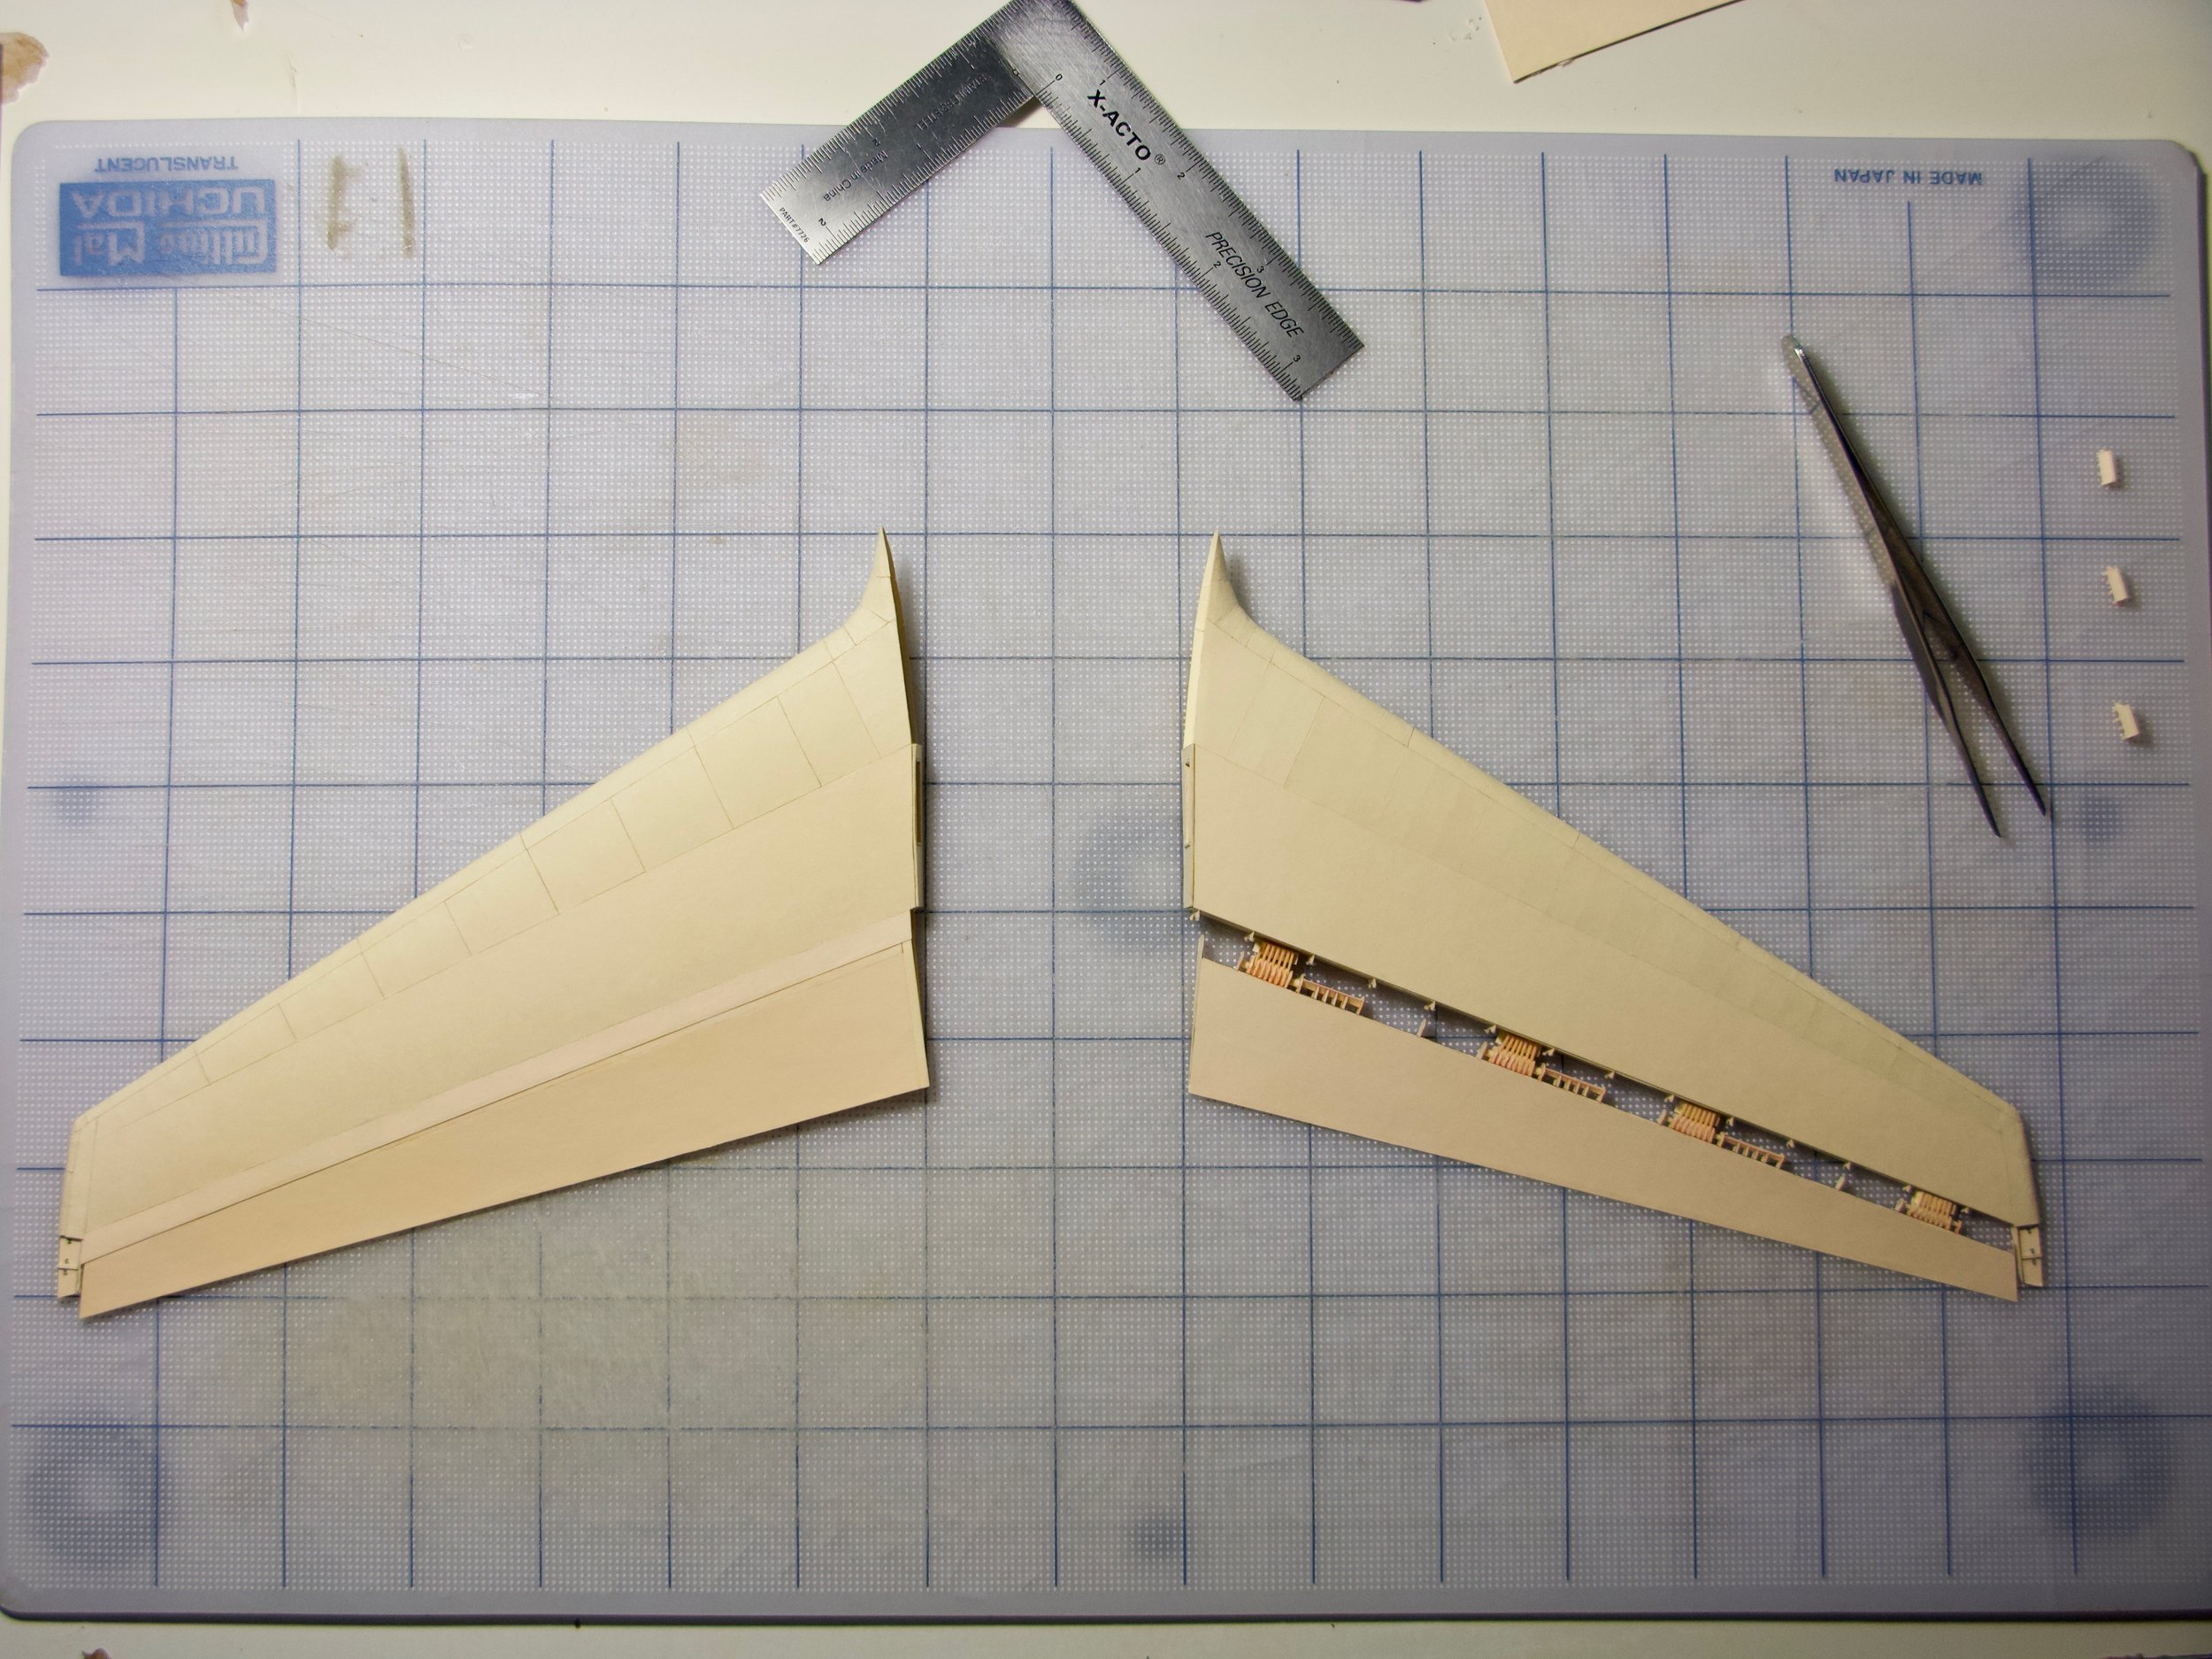 The horizontal stabilizers. On the right, the hinges can be seen